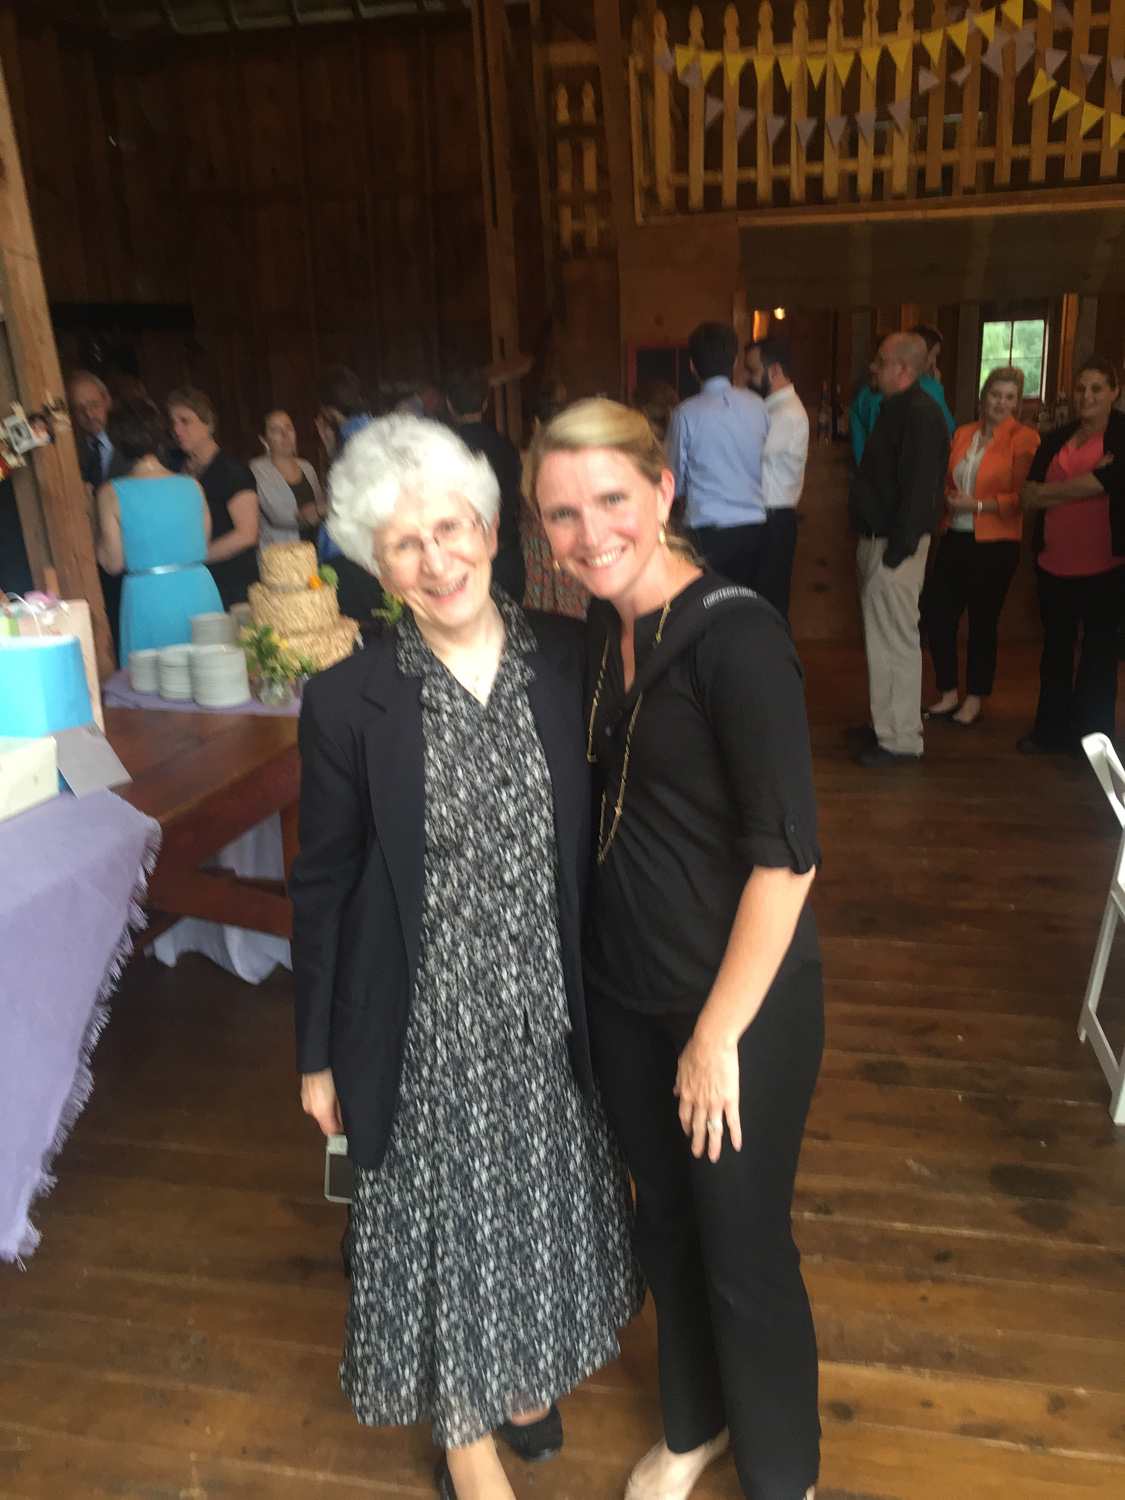 I LOVE making people connections - realizing a very special nun from South Dakota who has mutual friends is at the wedding you're shooting means a photo is needed!